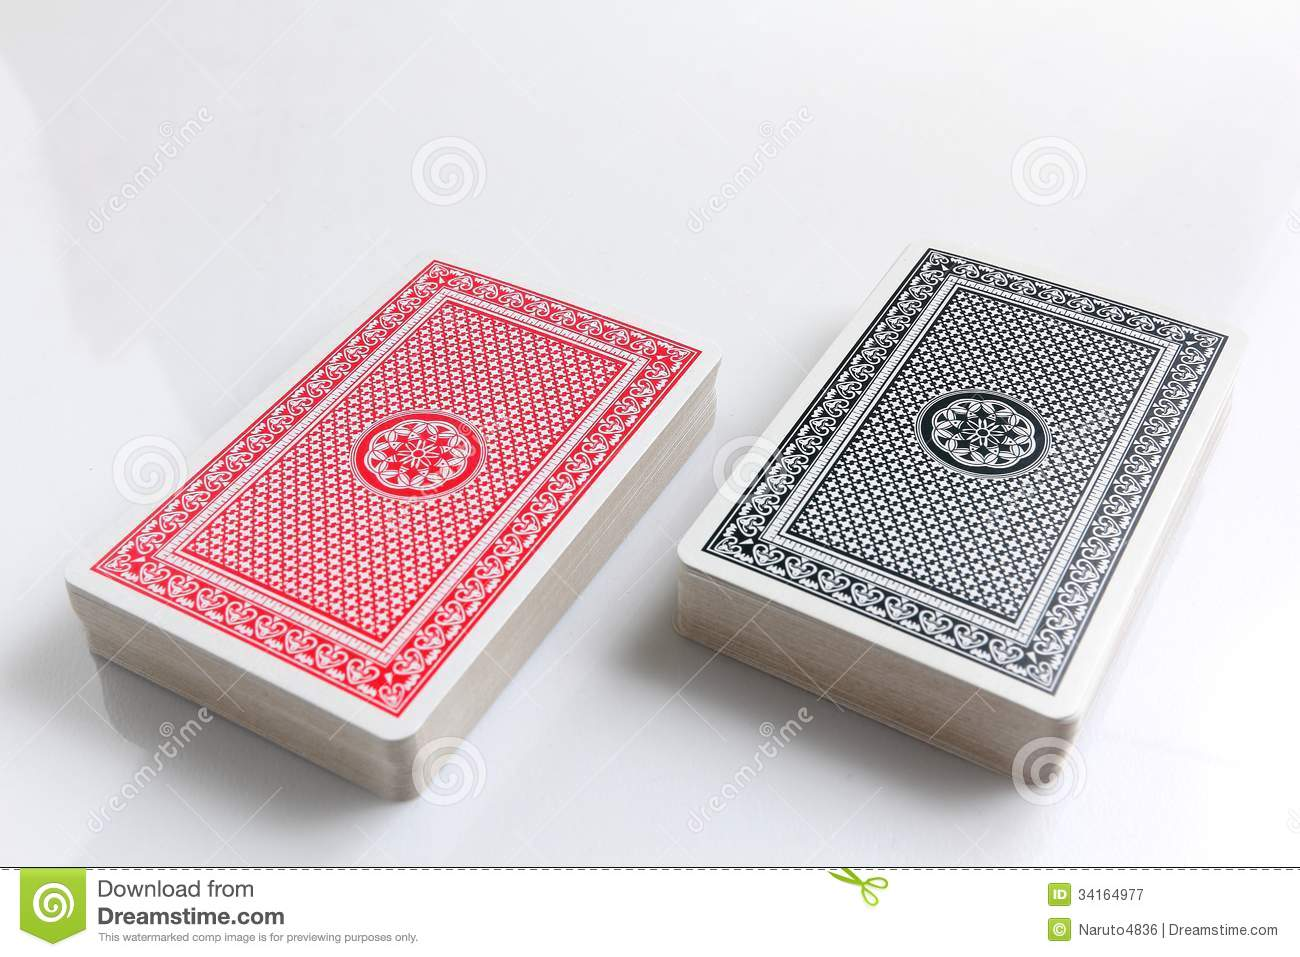 Two deck of cards